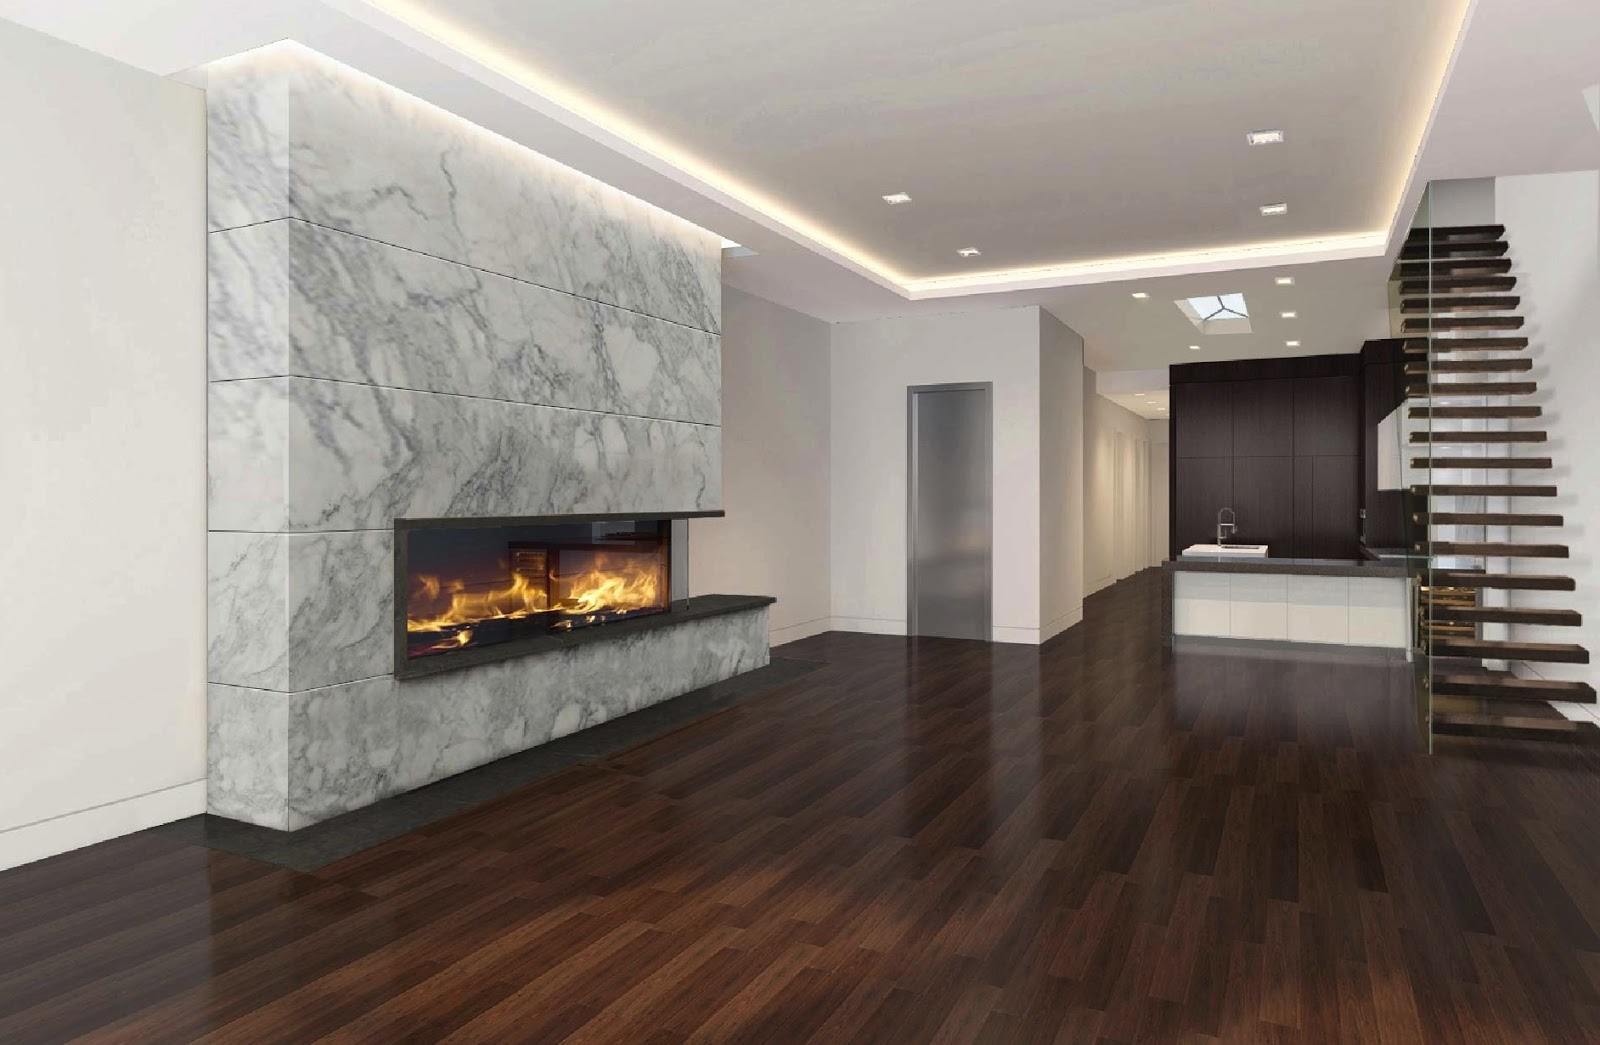 Acucraft Fireplaces: July 2013